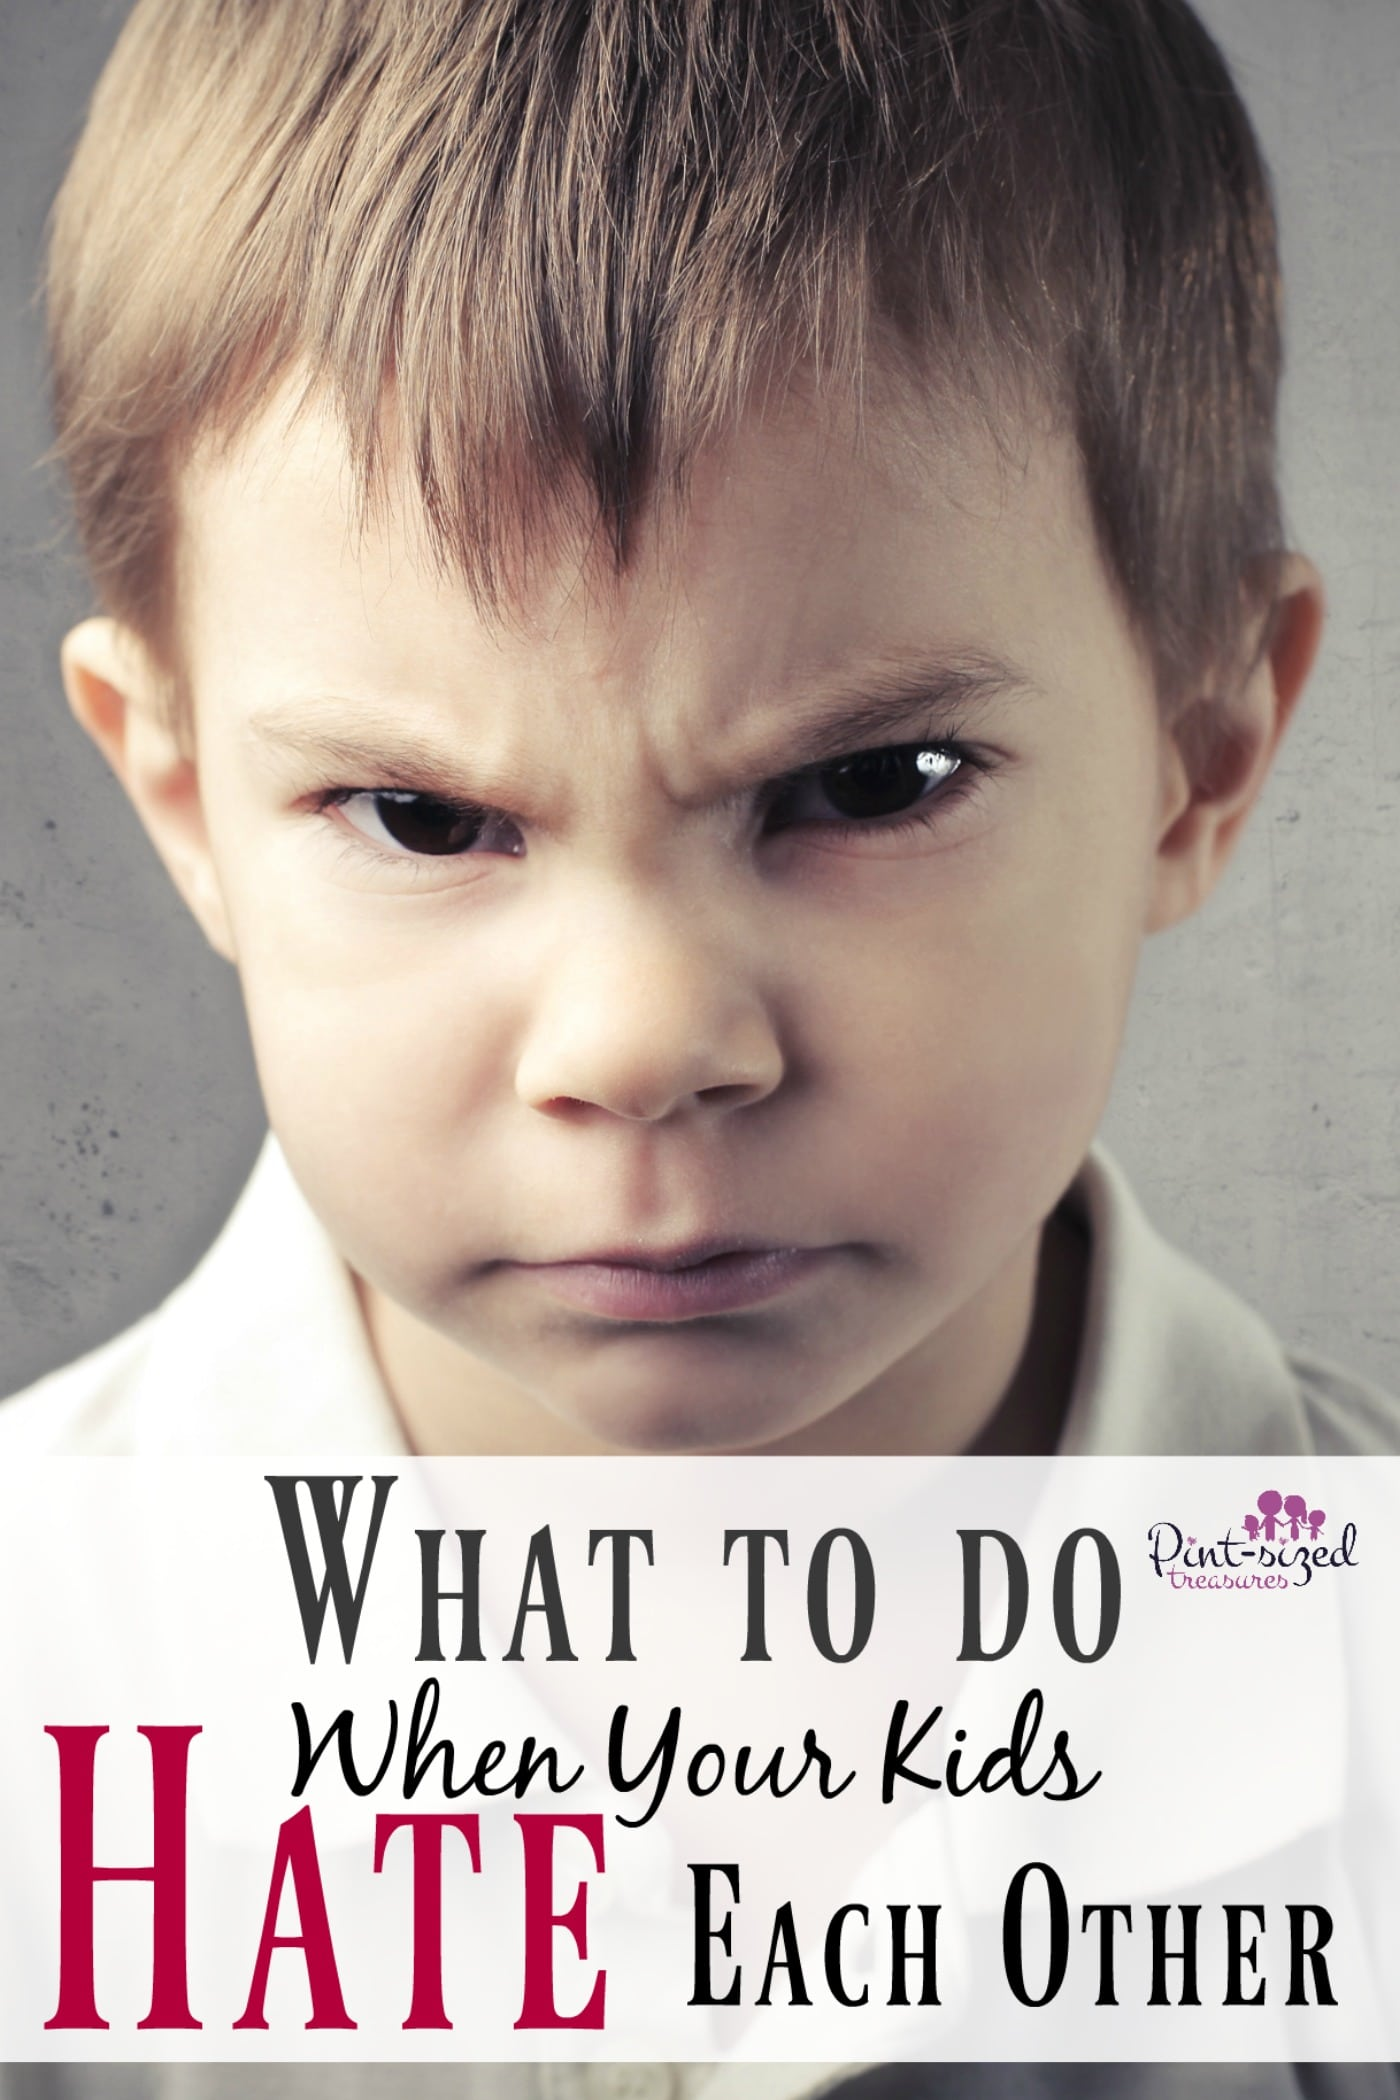 Dear Parents, these parenting tips on what to do when your kids hate each other are the best I've read yet! The truth needs to be shared!